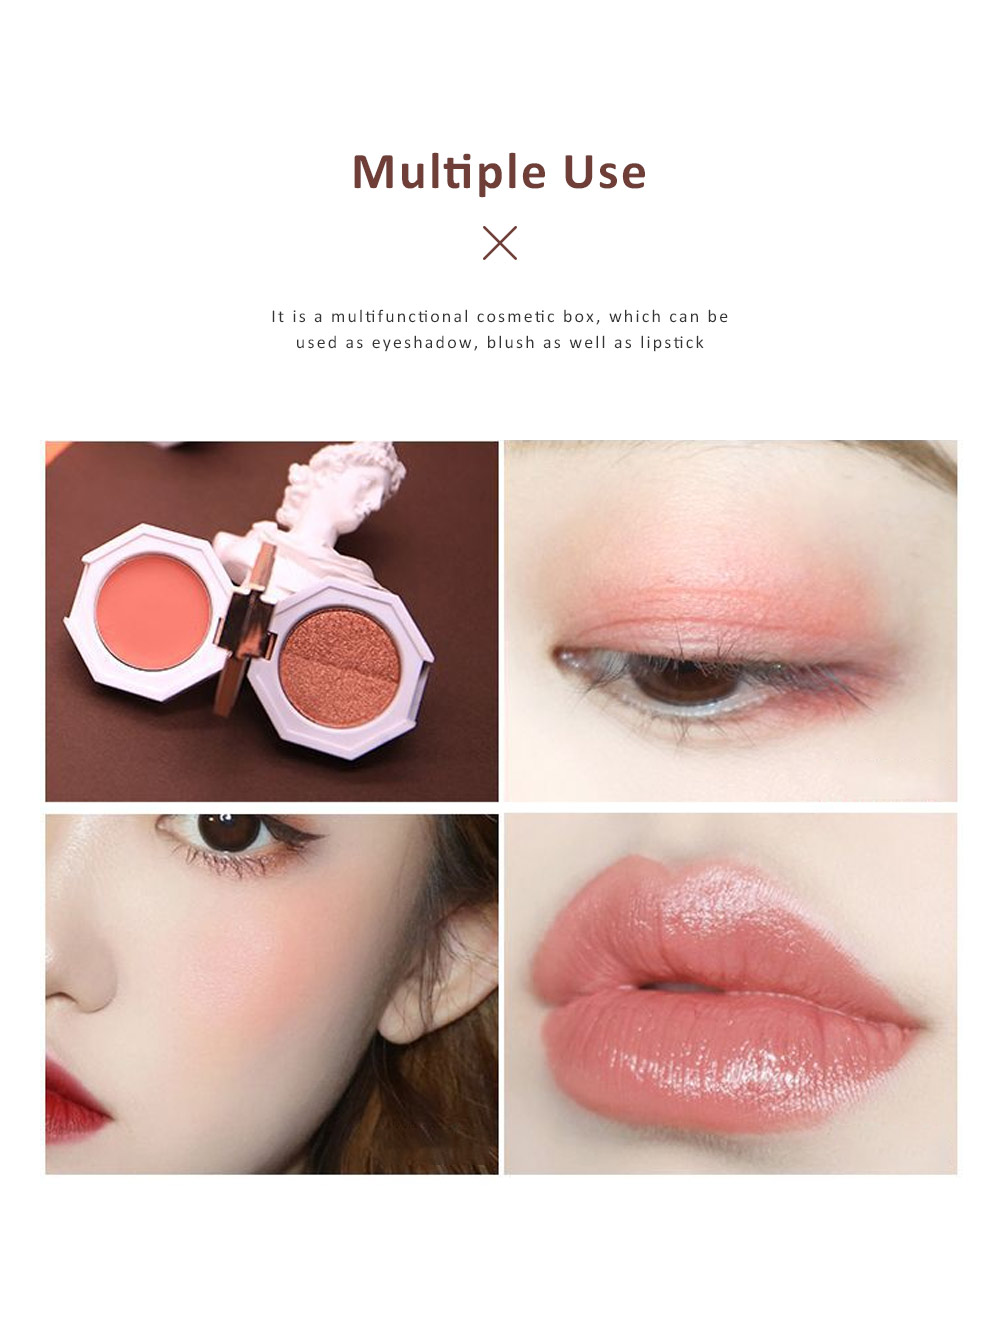 Double Layered Eyeshadow Box Marble Surface Matte and Shimmer Foldable Eye Shadow Powder Makeup 2